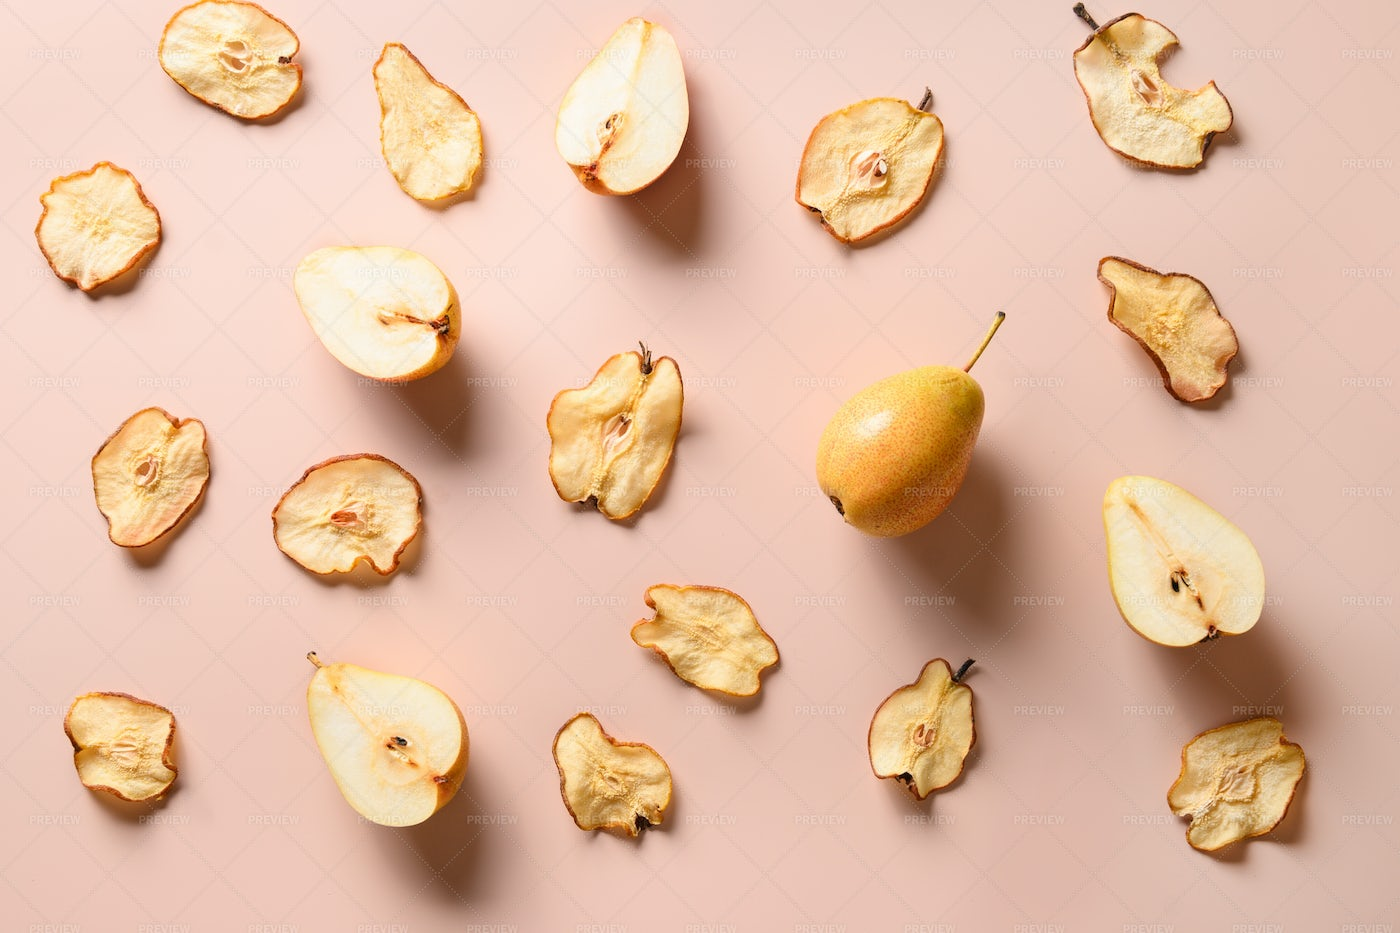 Fruits Pattern Of Pear Chips: Stock Photos